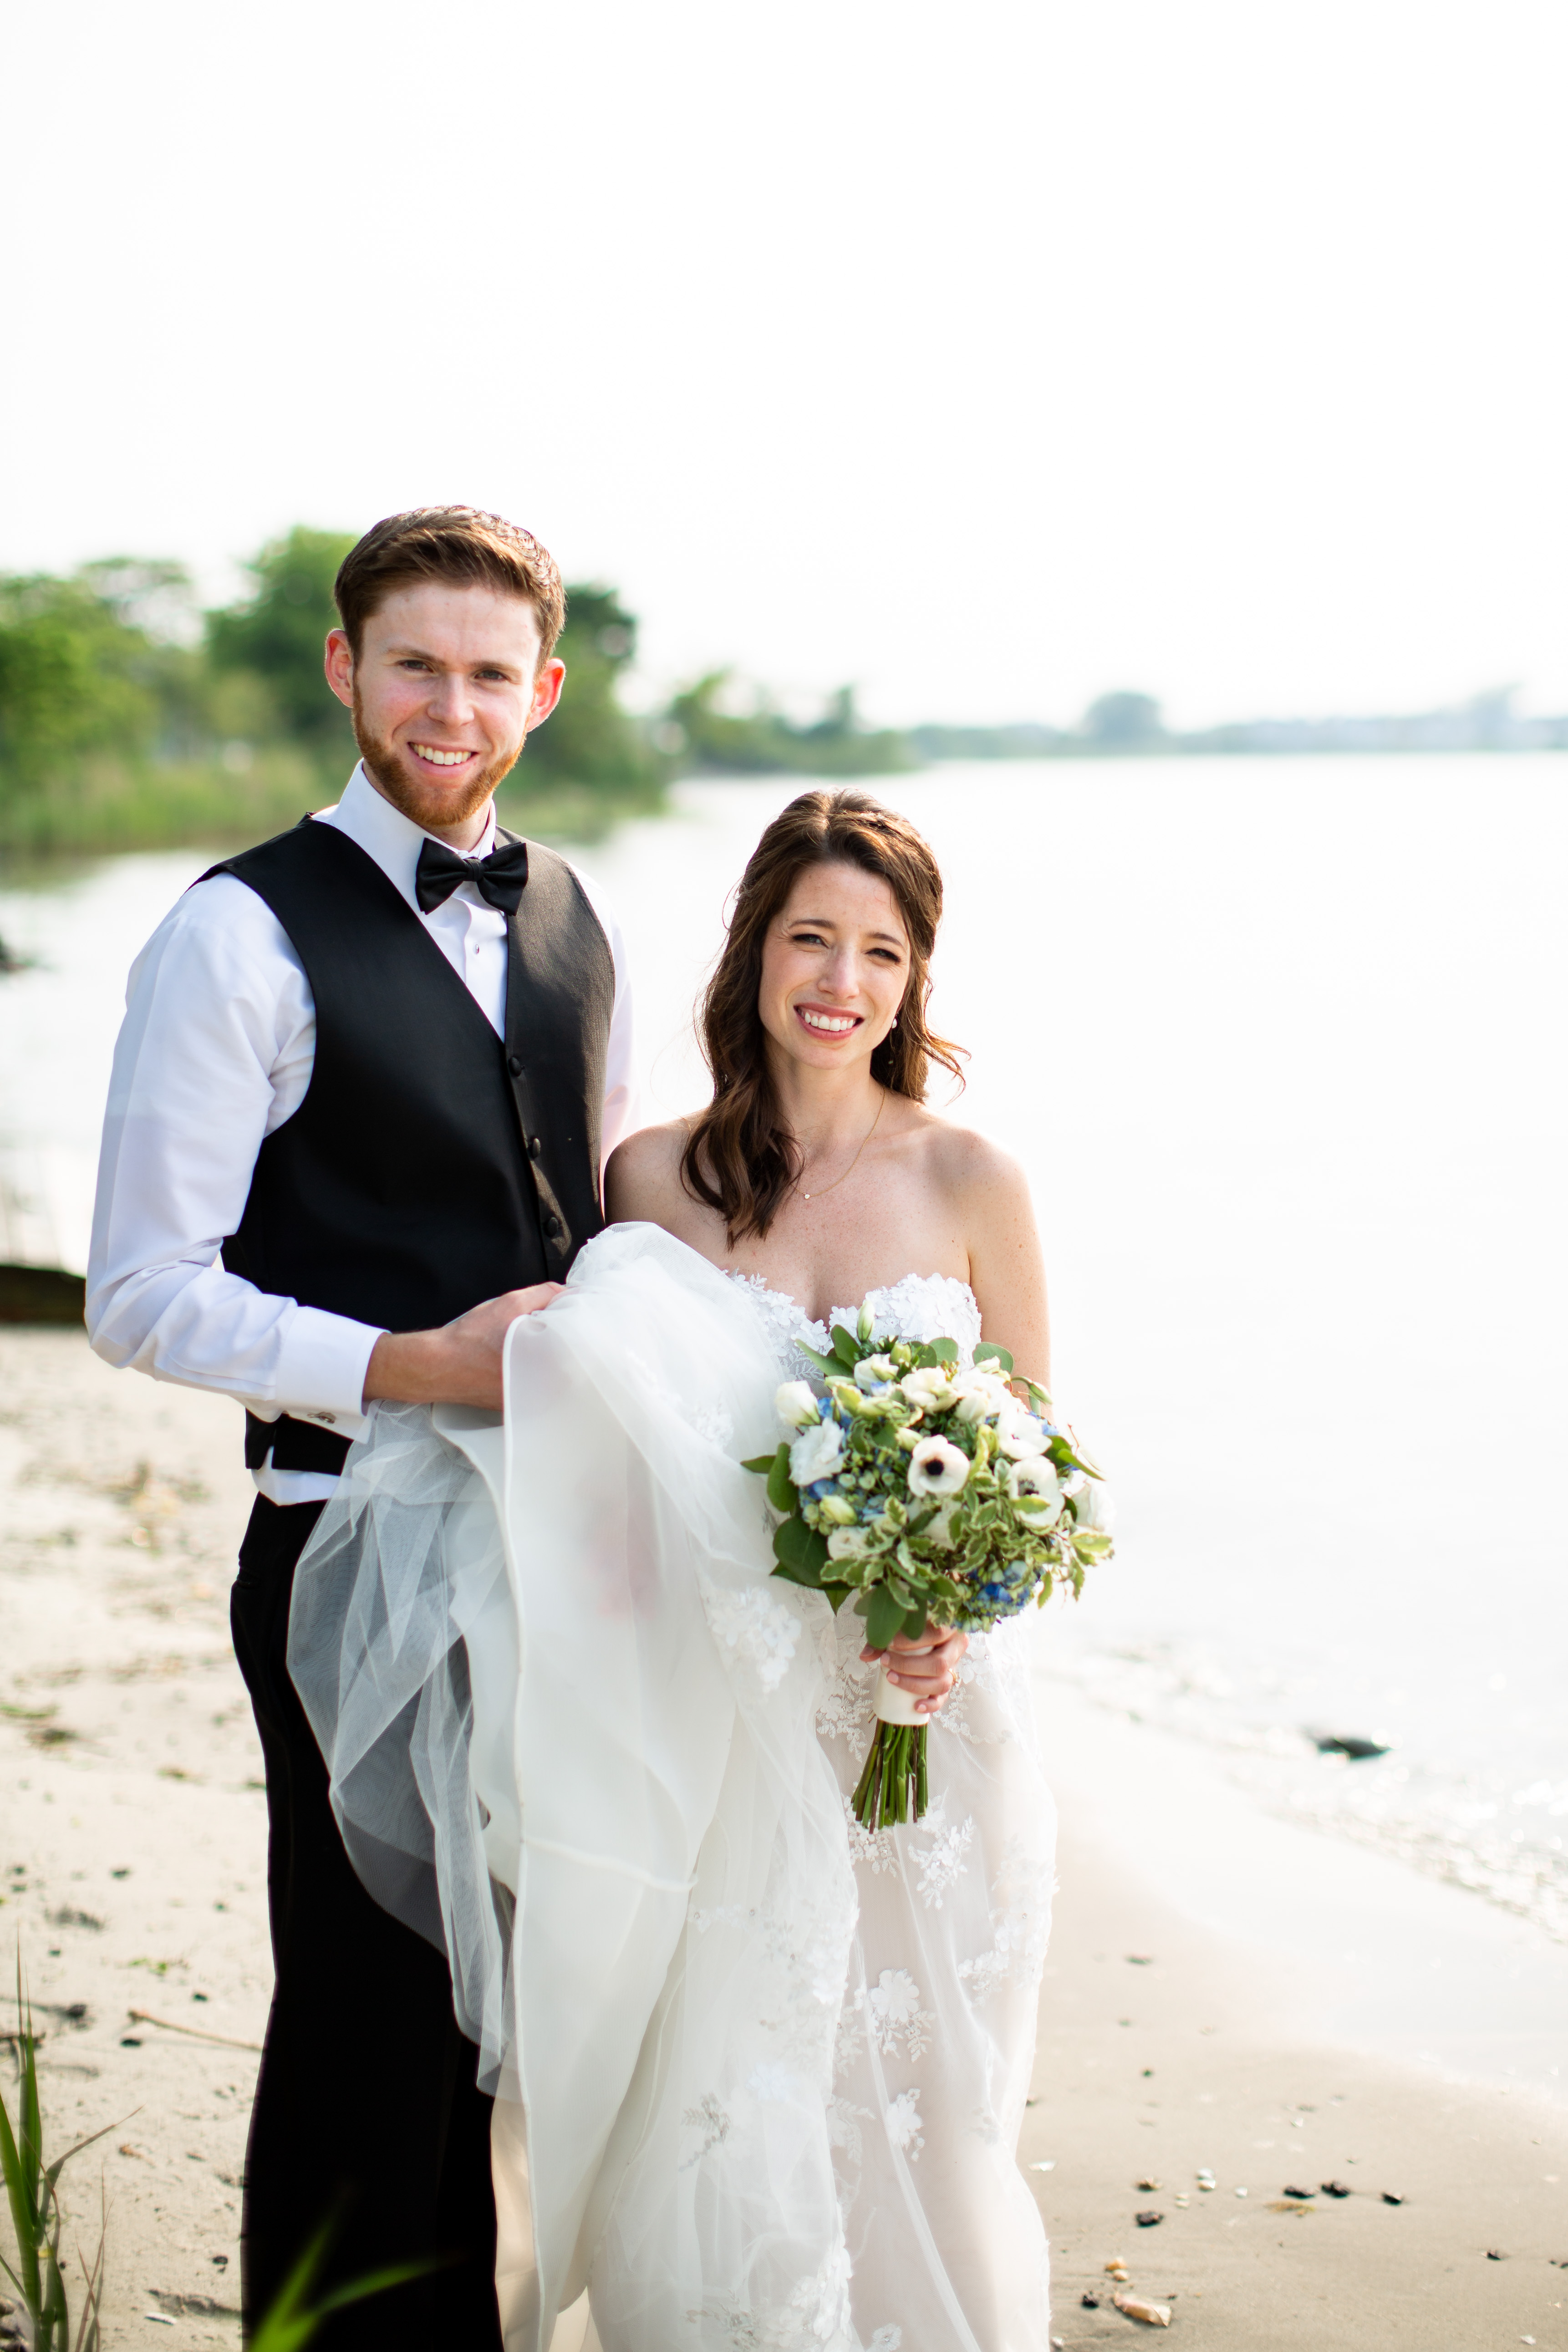 Bride and groom by the sea, in Cape May